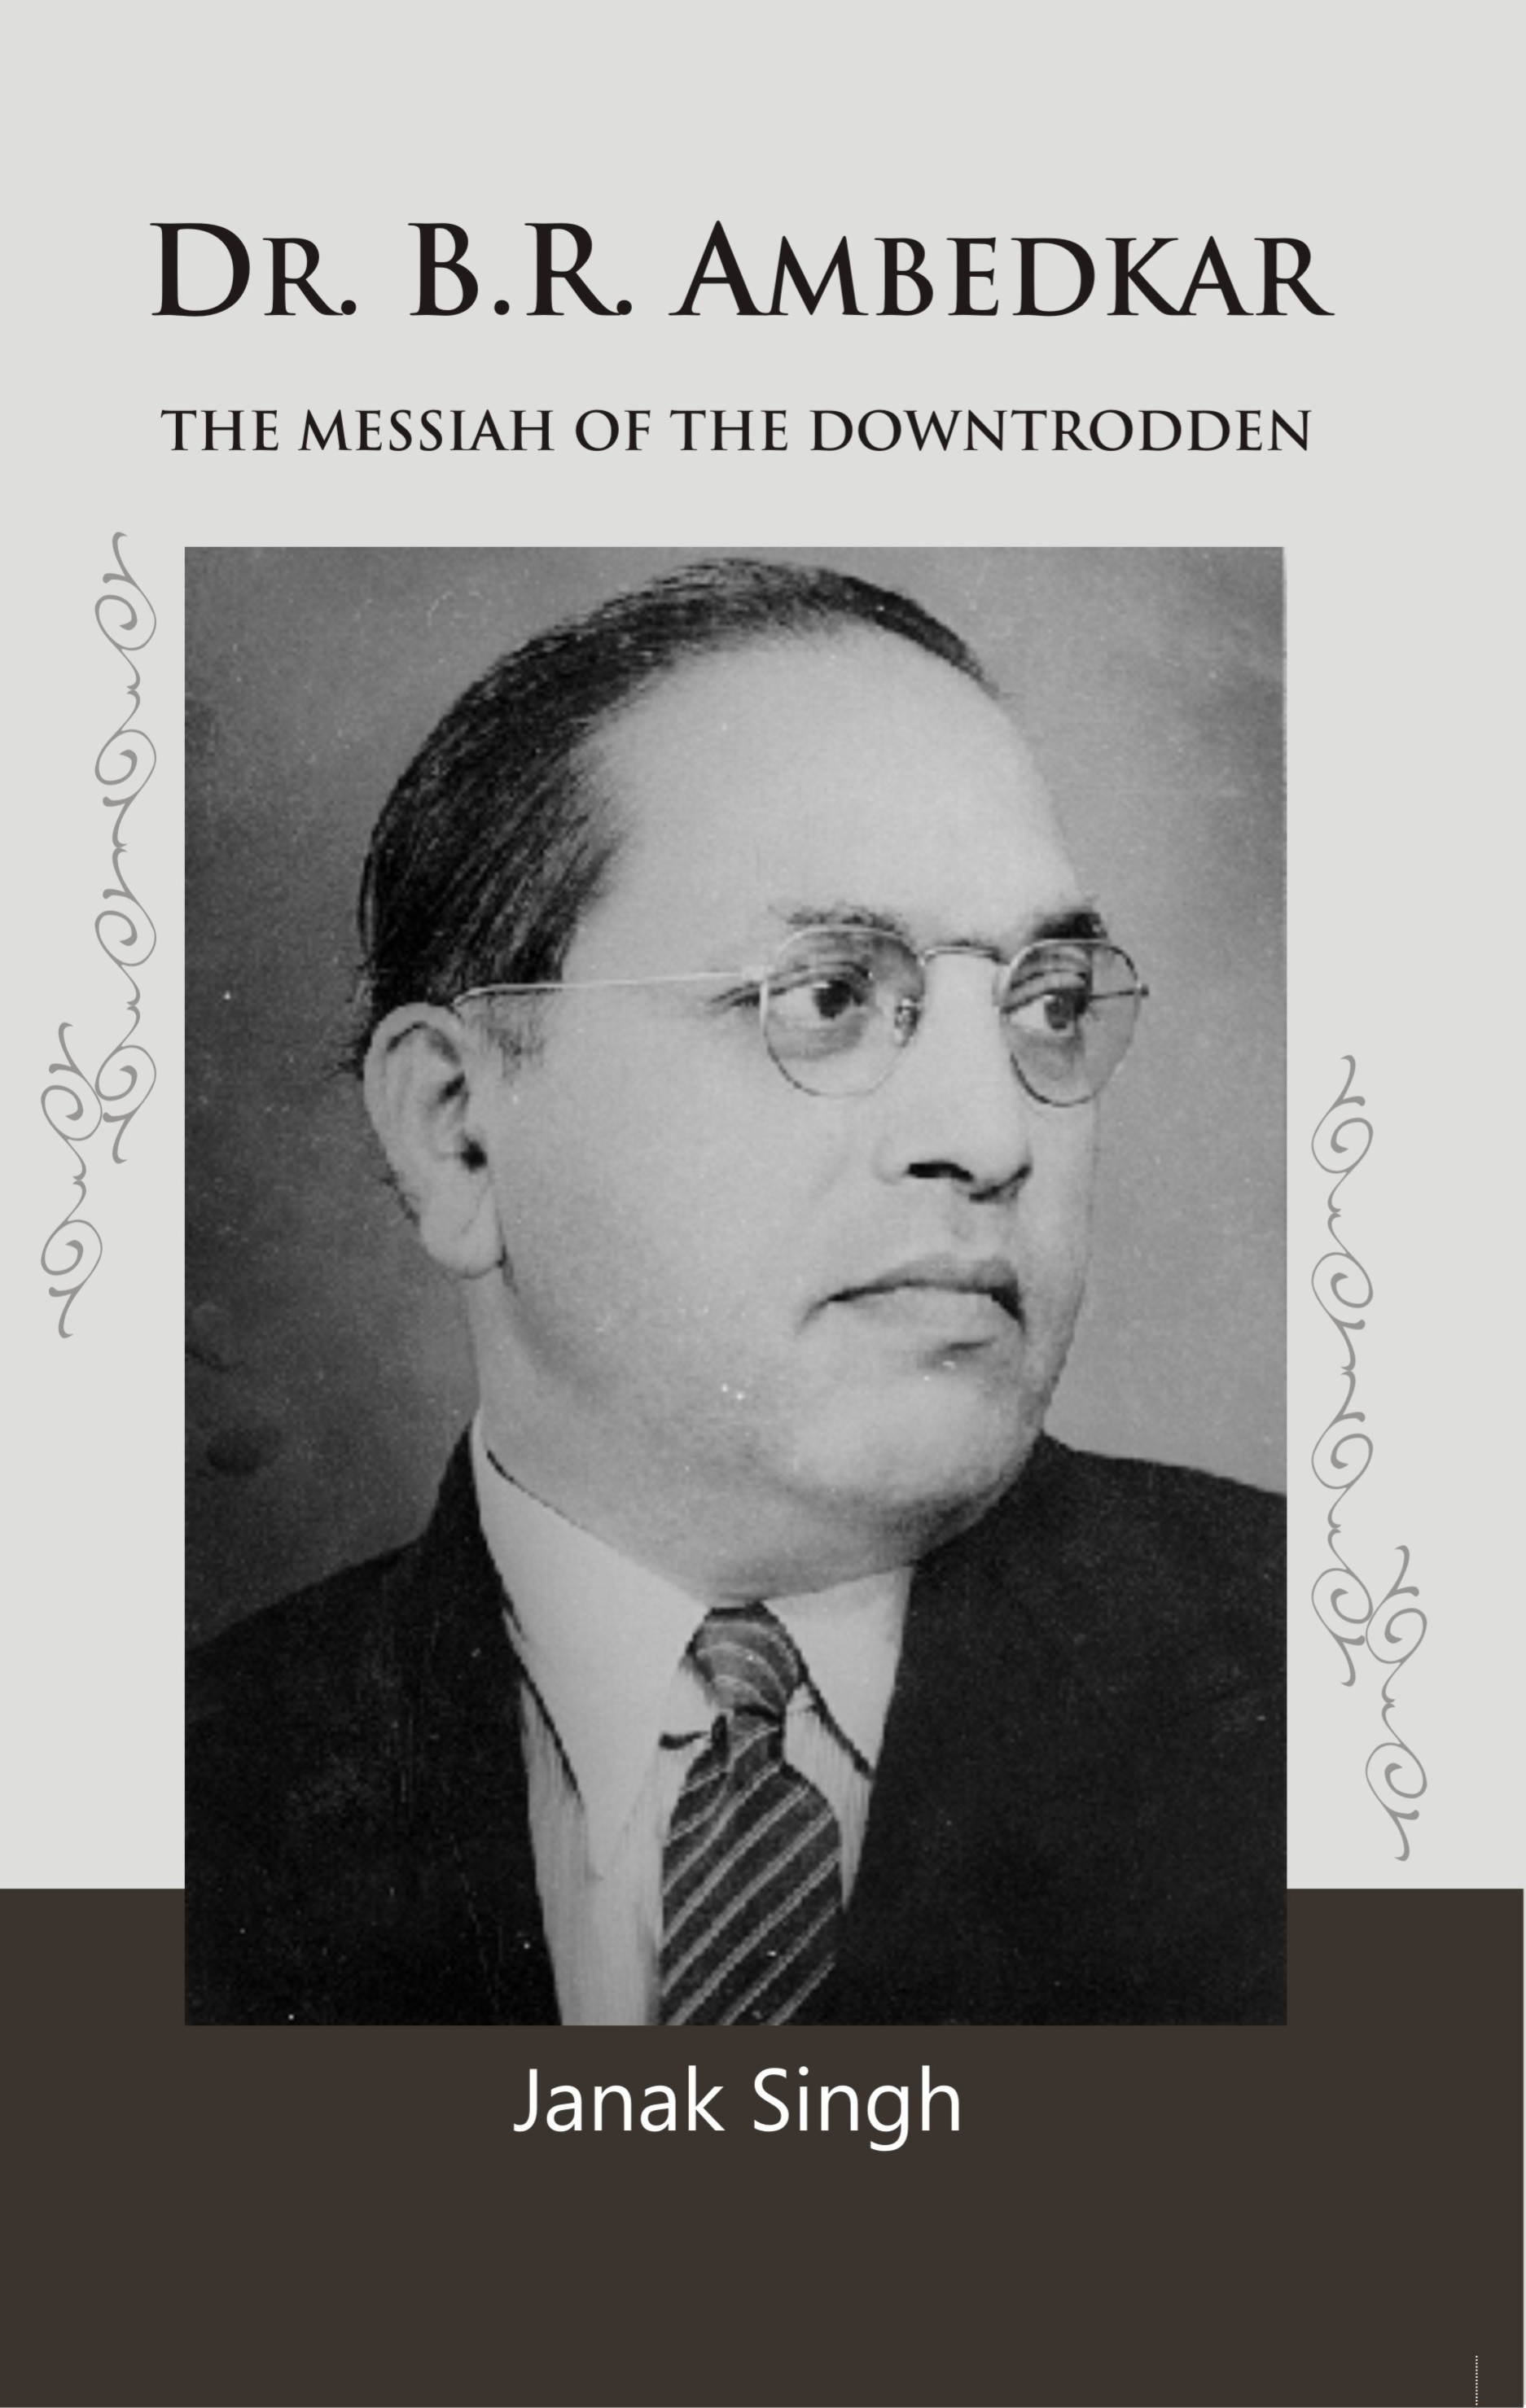 Dr. B.R. Ambedkar: the Messiah of the Downtrodden